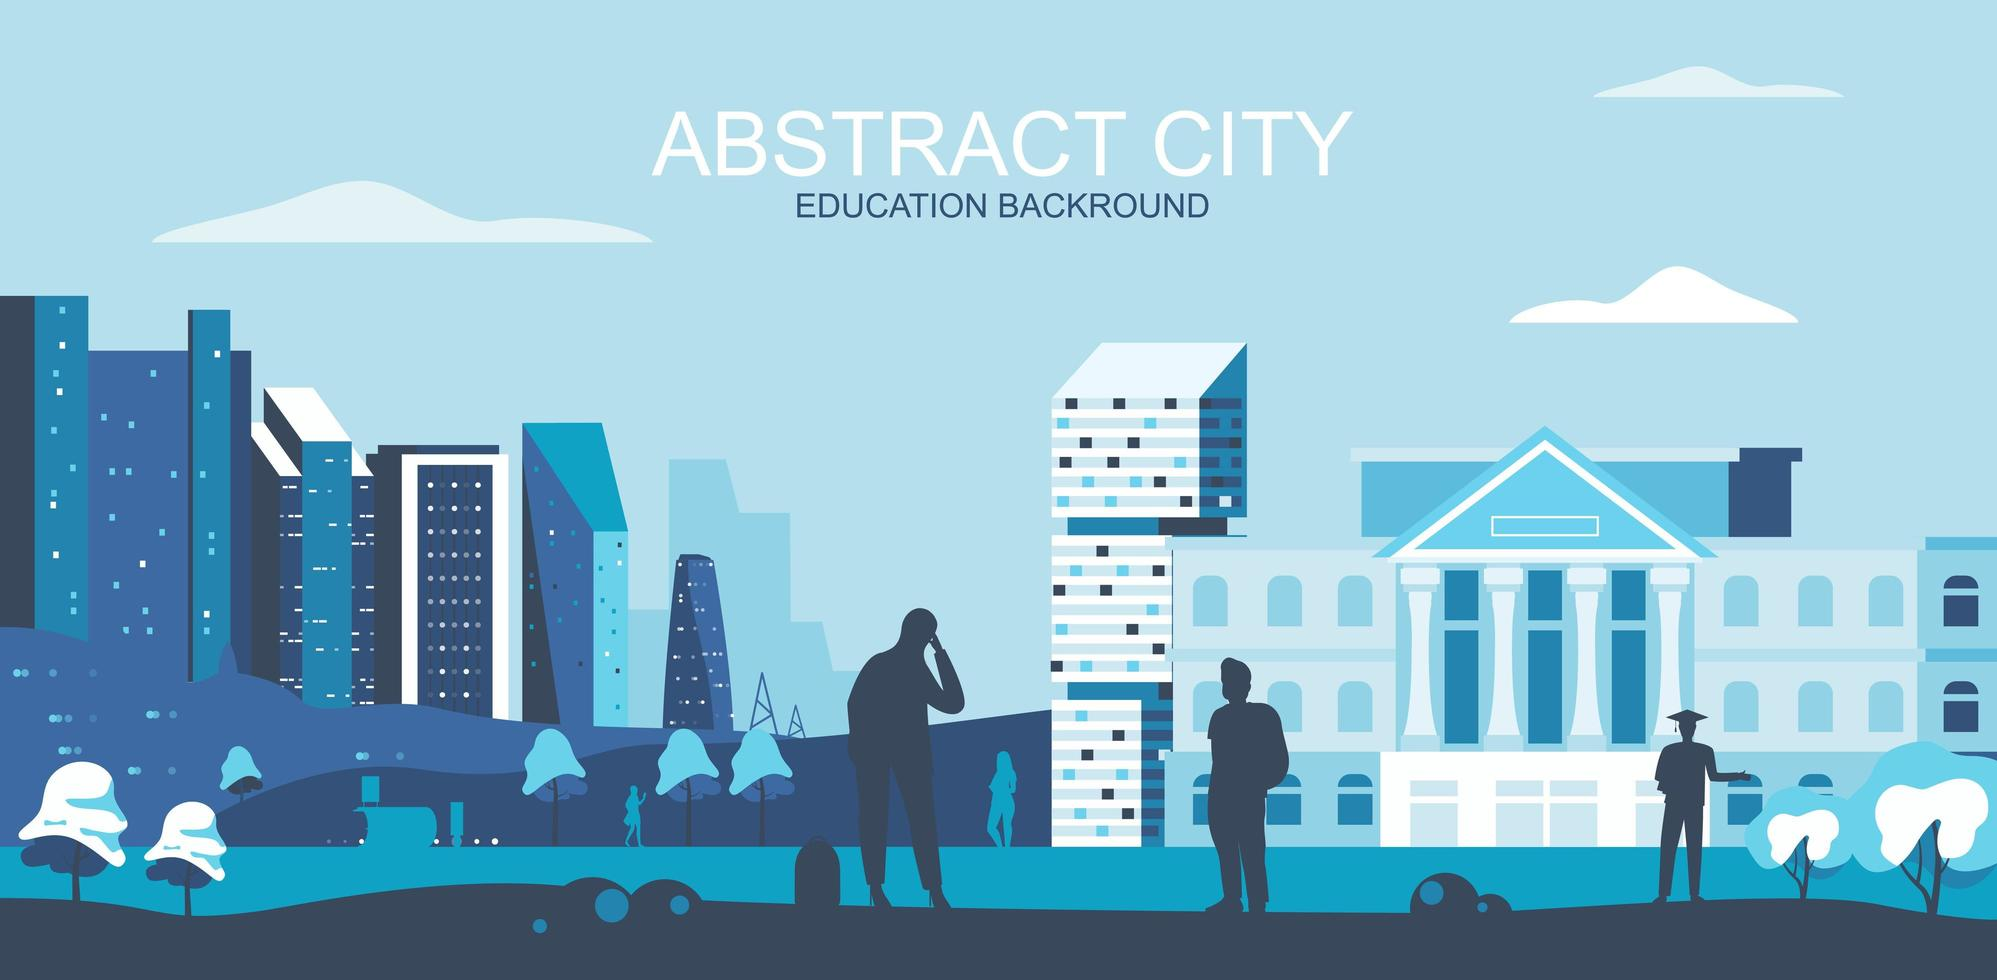 University, college campus with students in blue tones vector